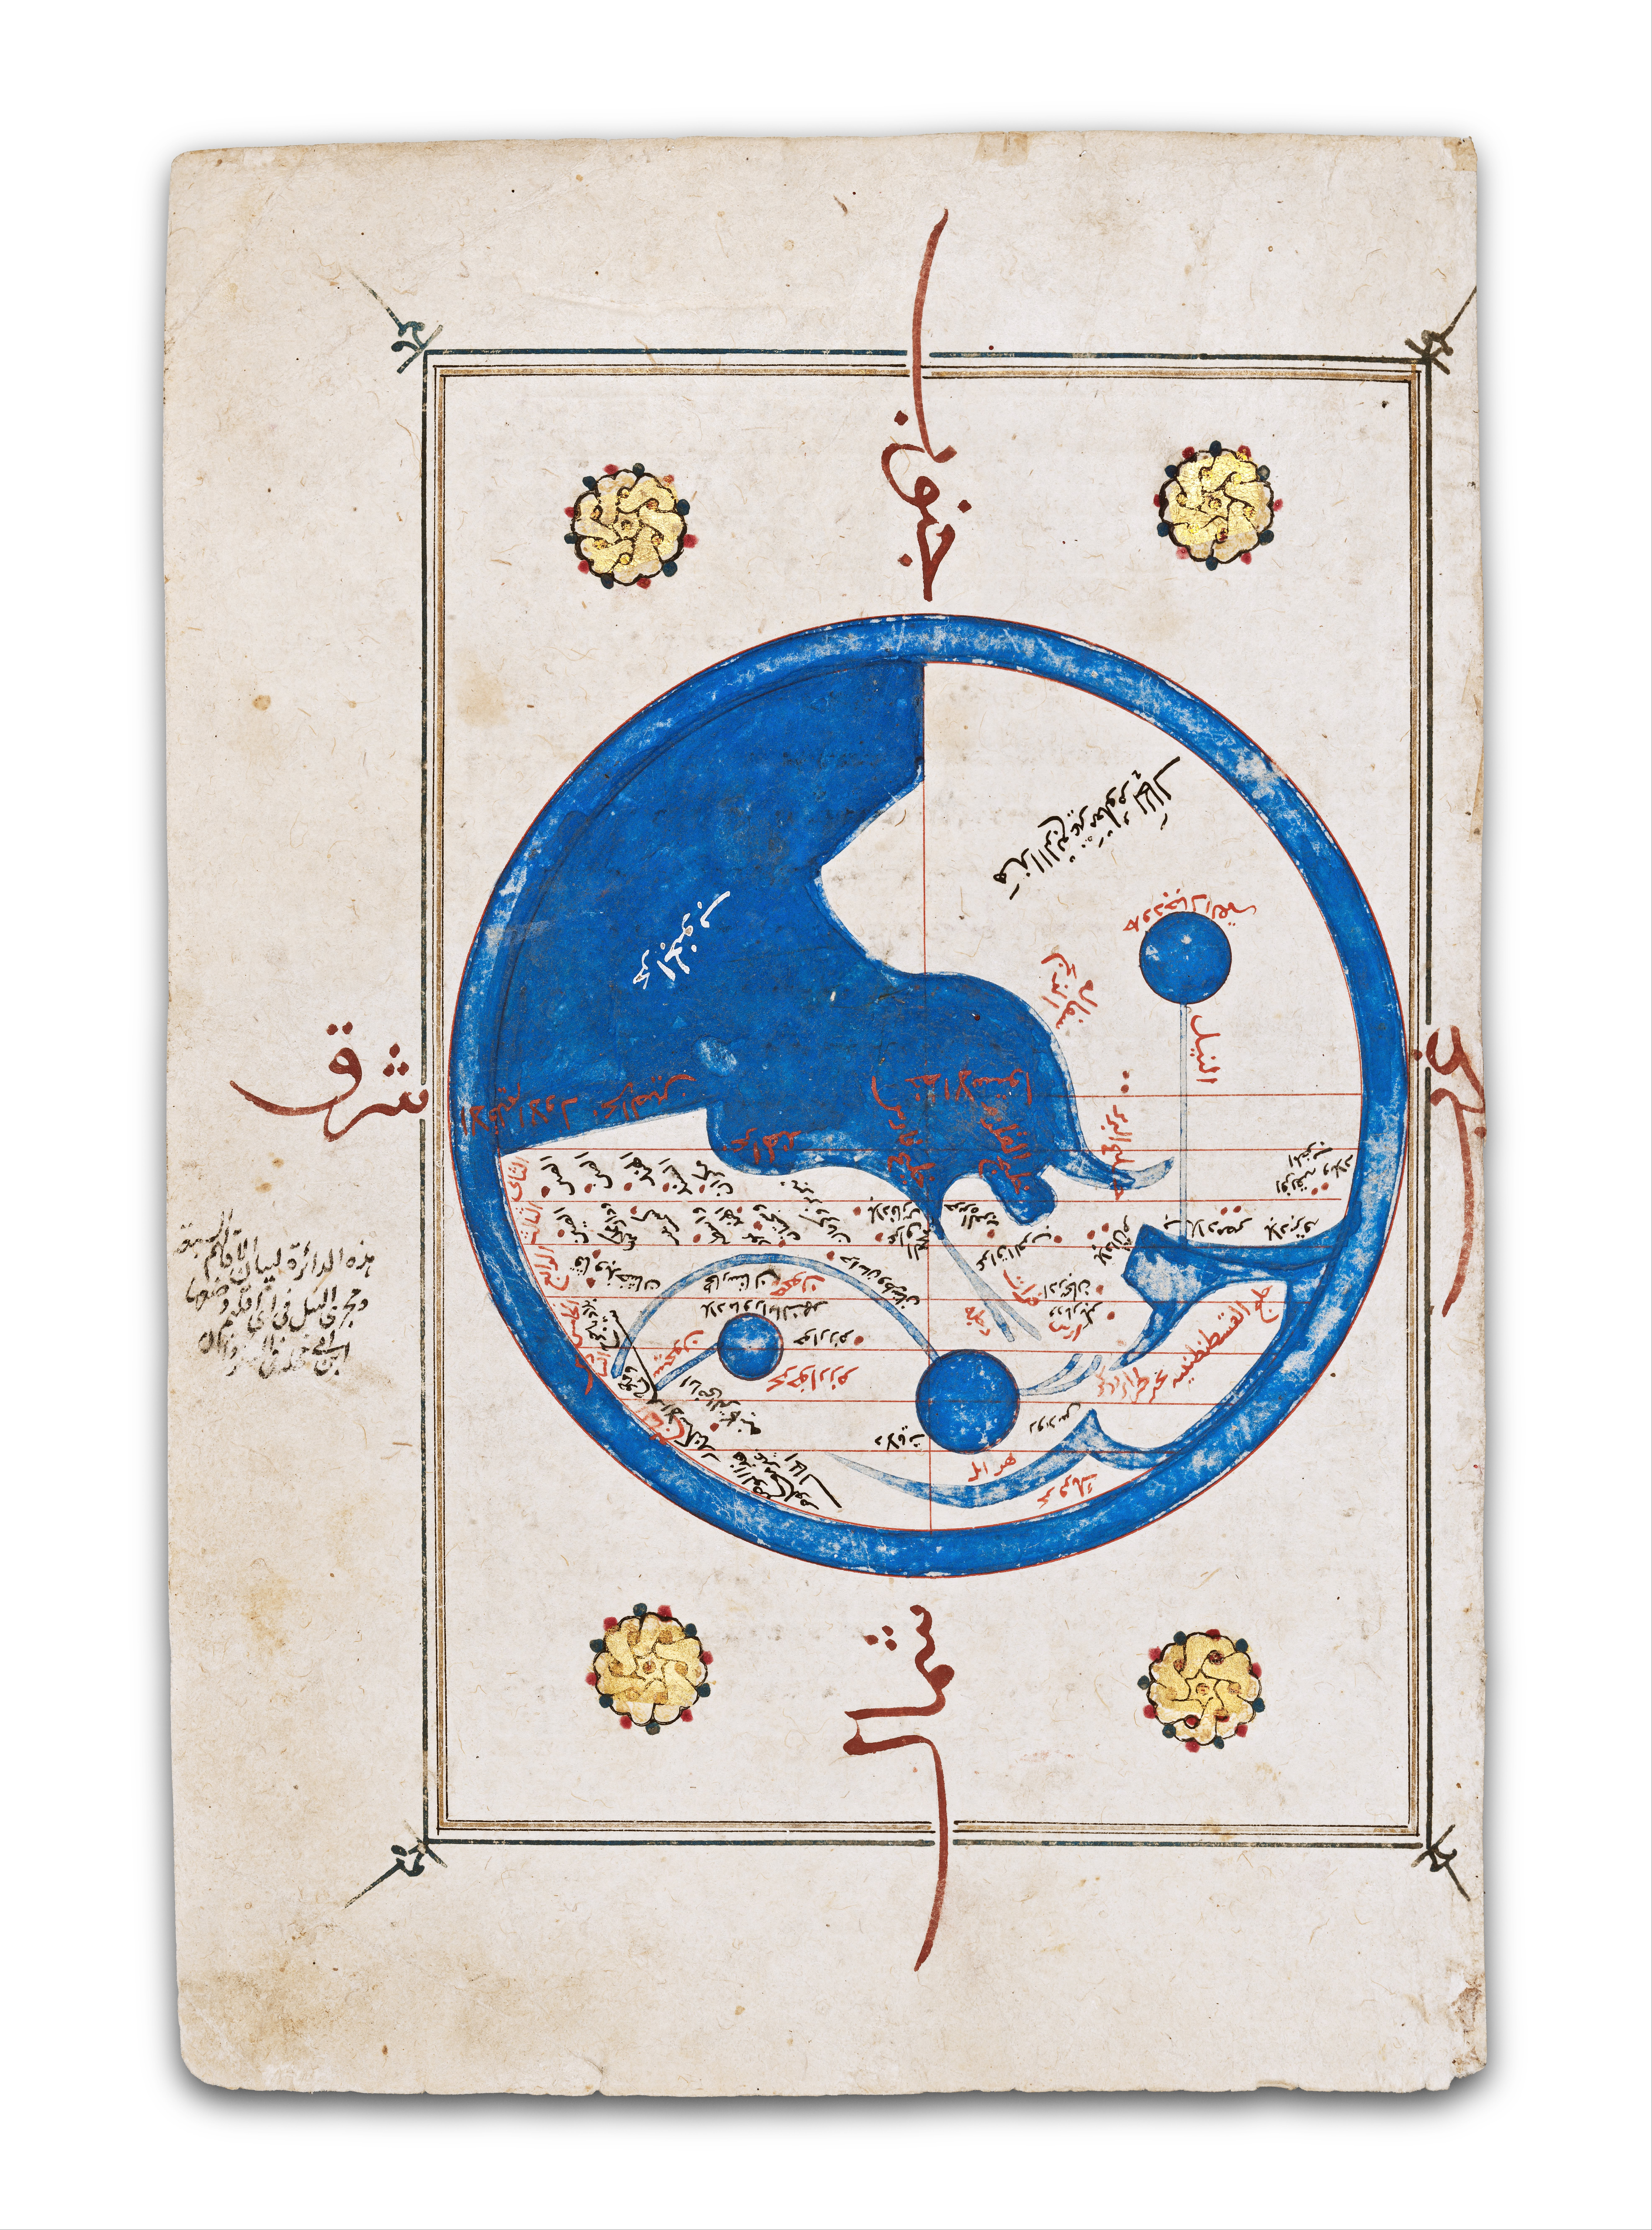 Fileunknown egypt 15th century map of world google art fileunknown egypt 15th century map of world google art project gumiabroncs Gallery